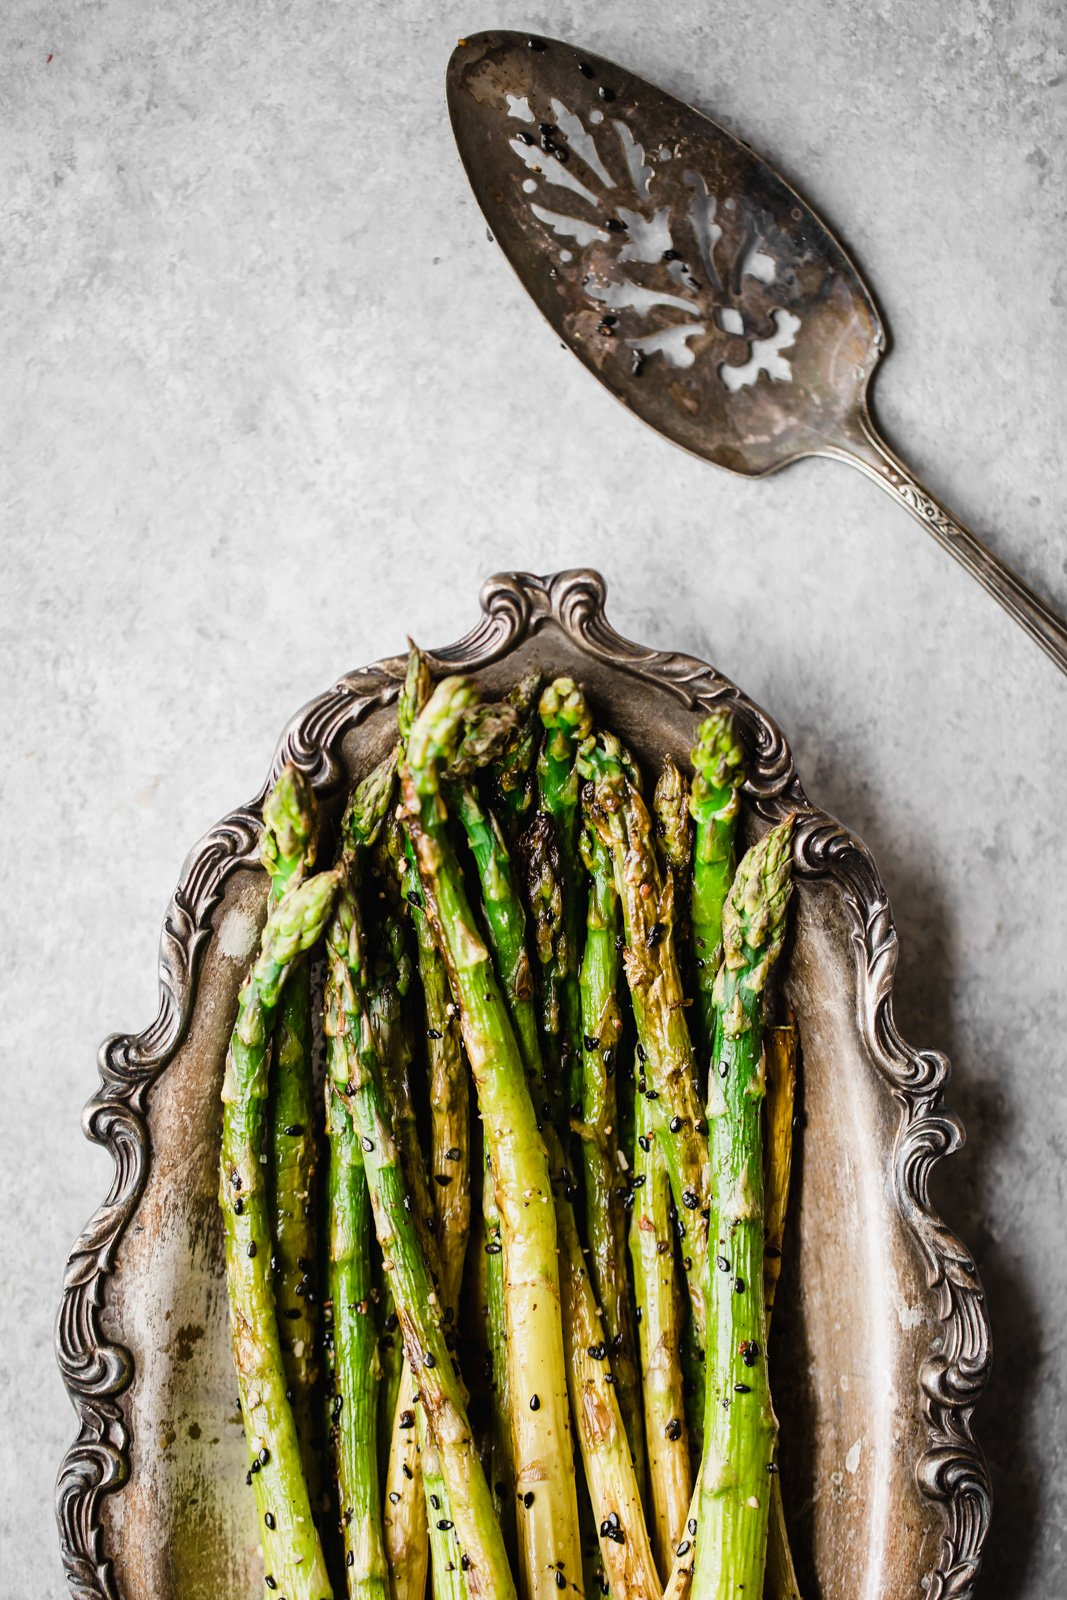 roasted asparagus on a platter with a serving spoon